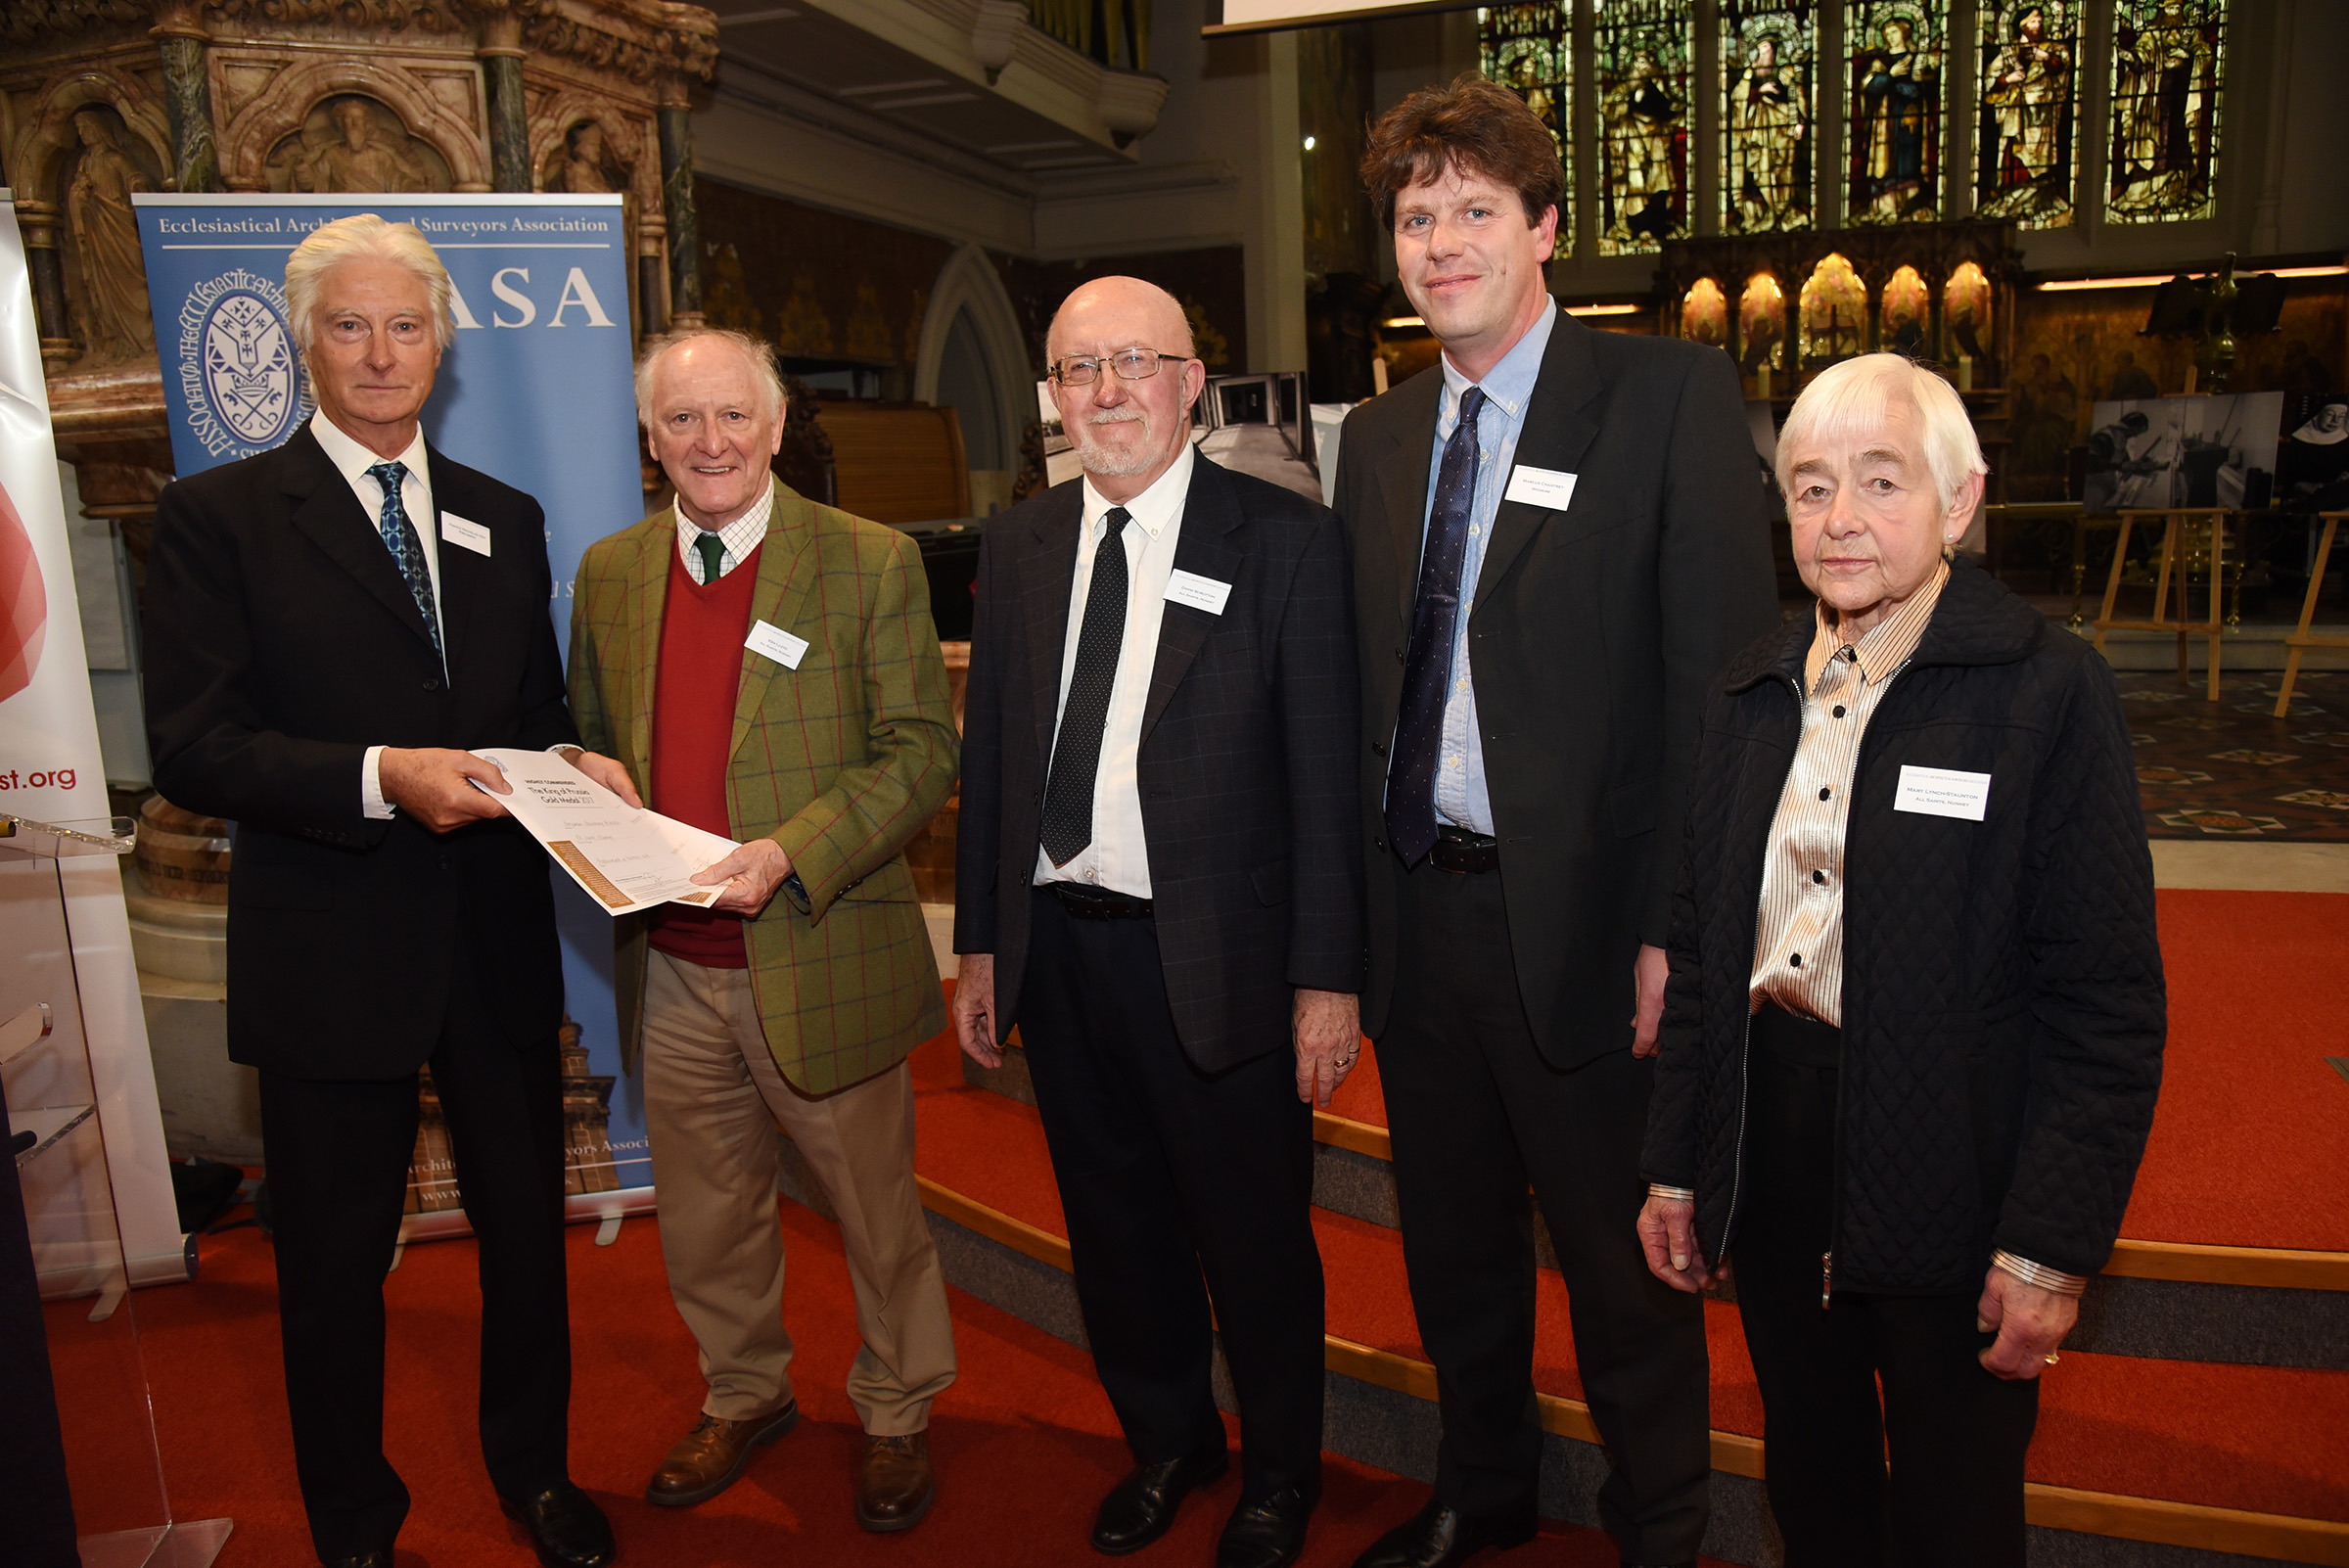 All Saints, Nunney and Benjamin + Beauchamp Architects, Highly Commended for the King of Prussia Gold Medal